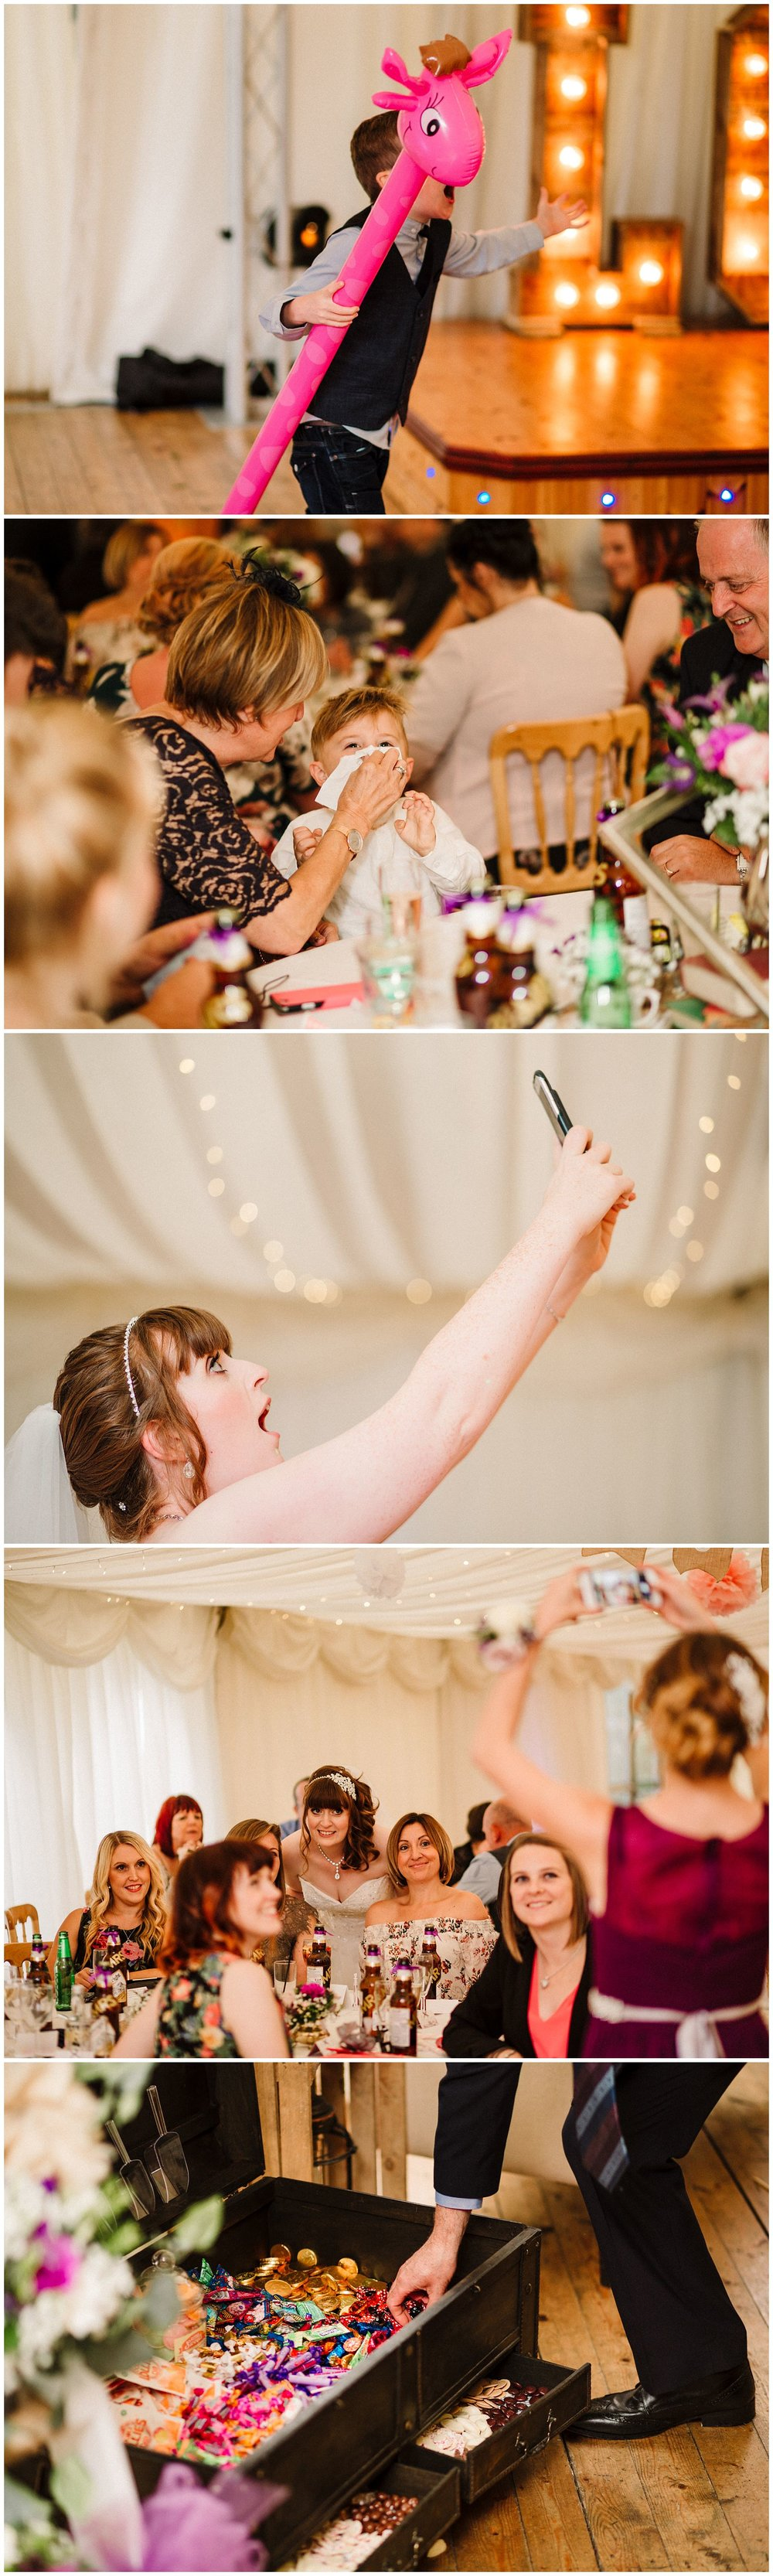 documentary wedding photographer doncaster